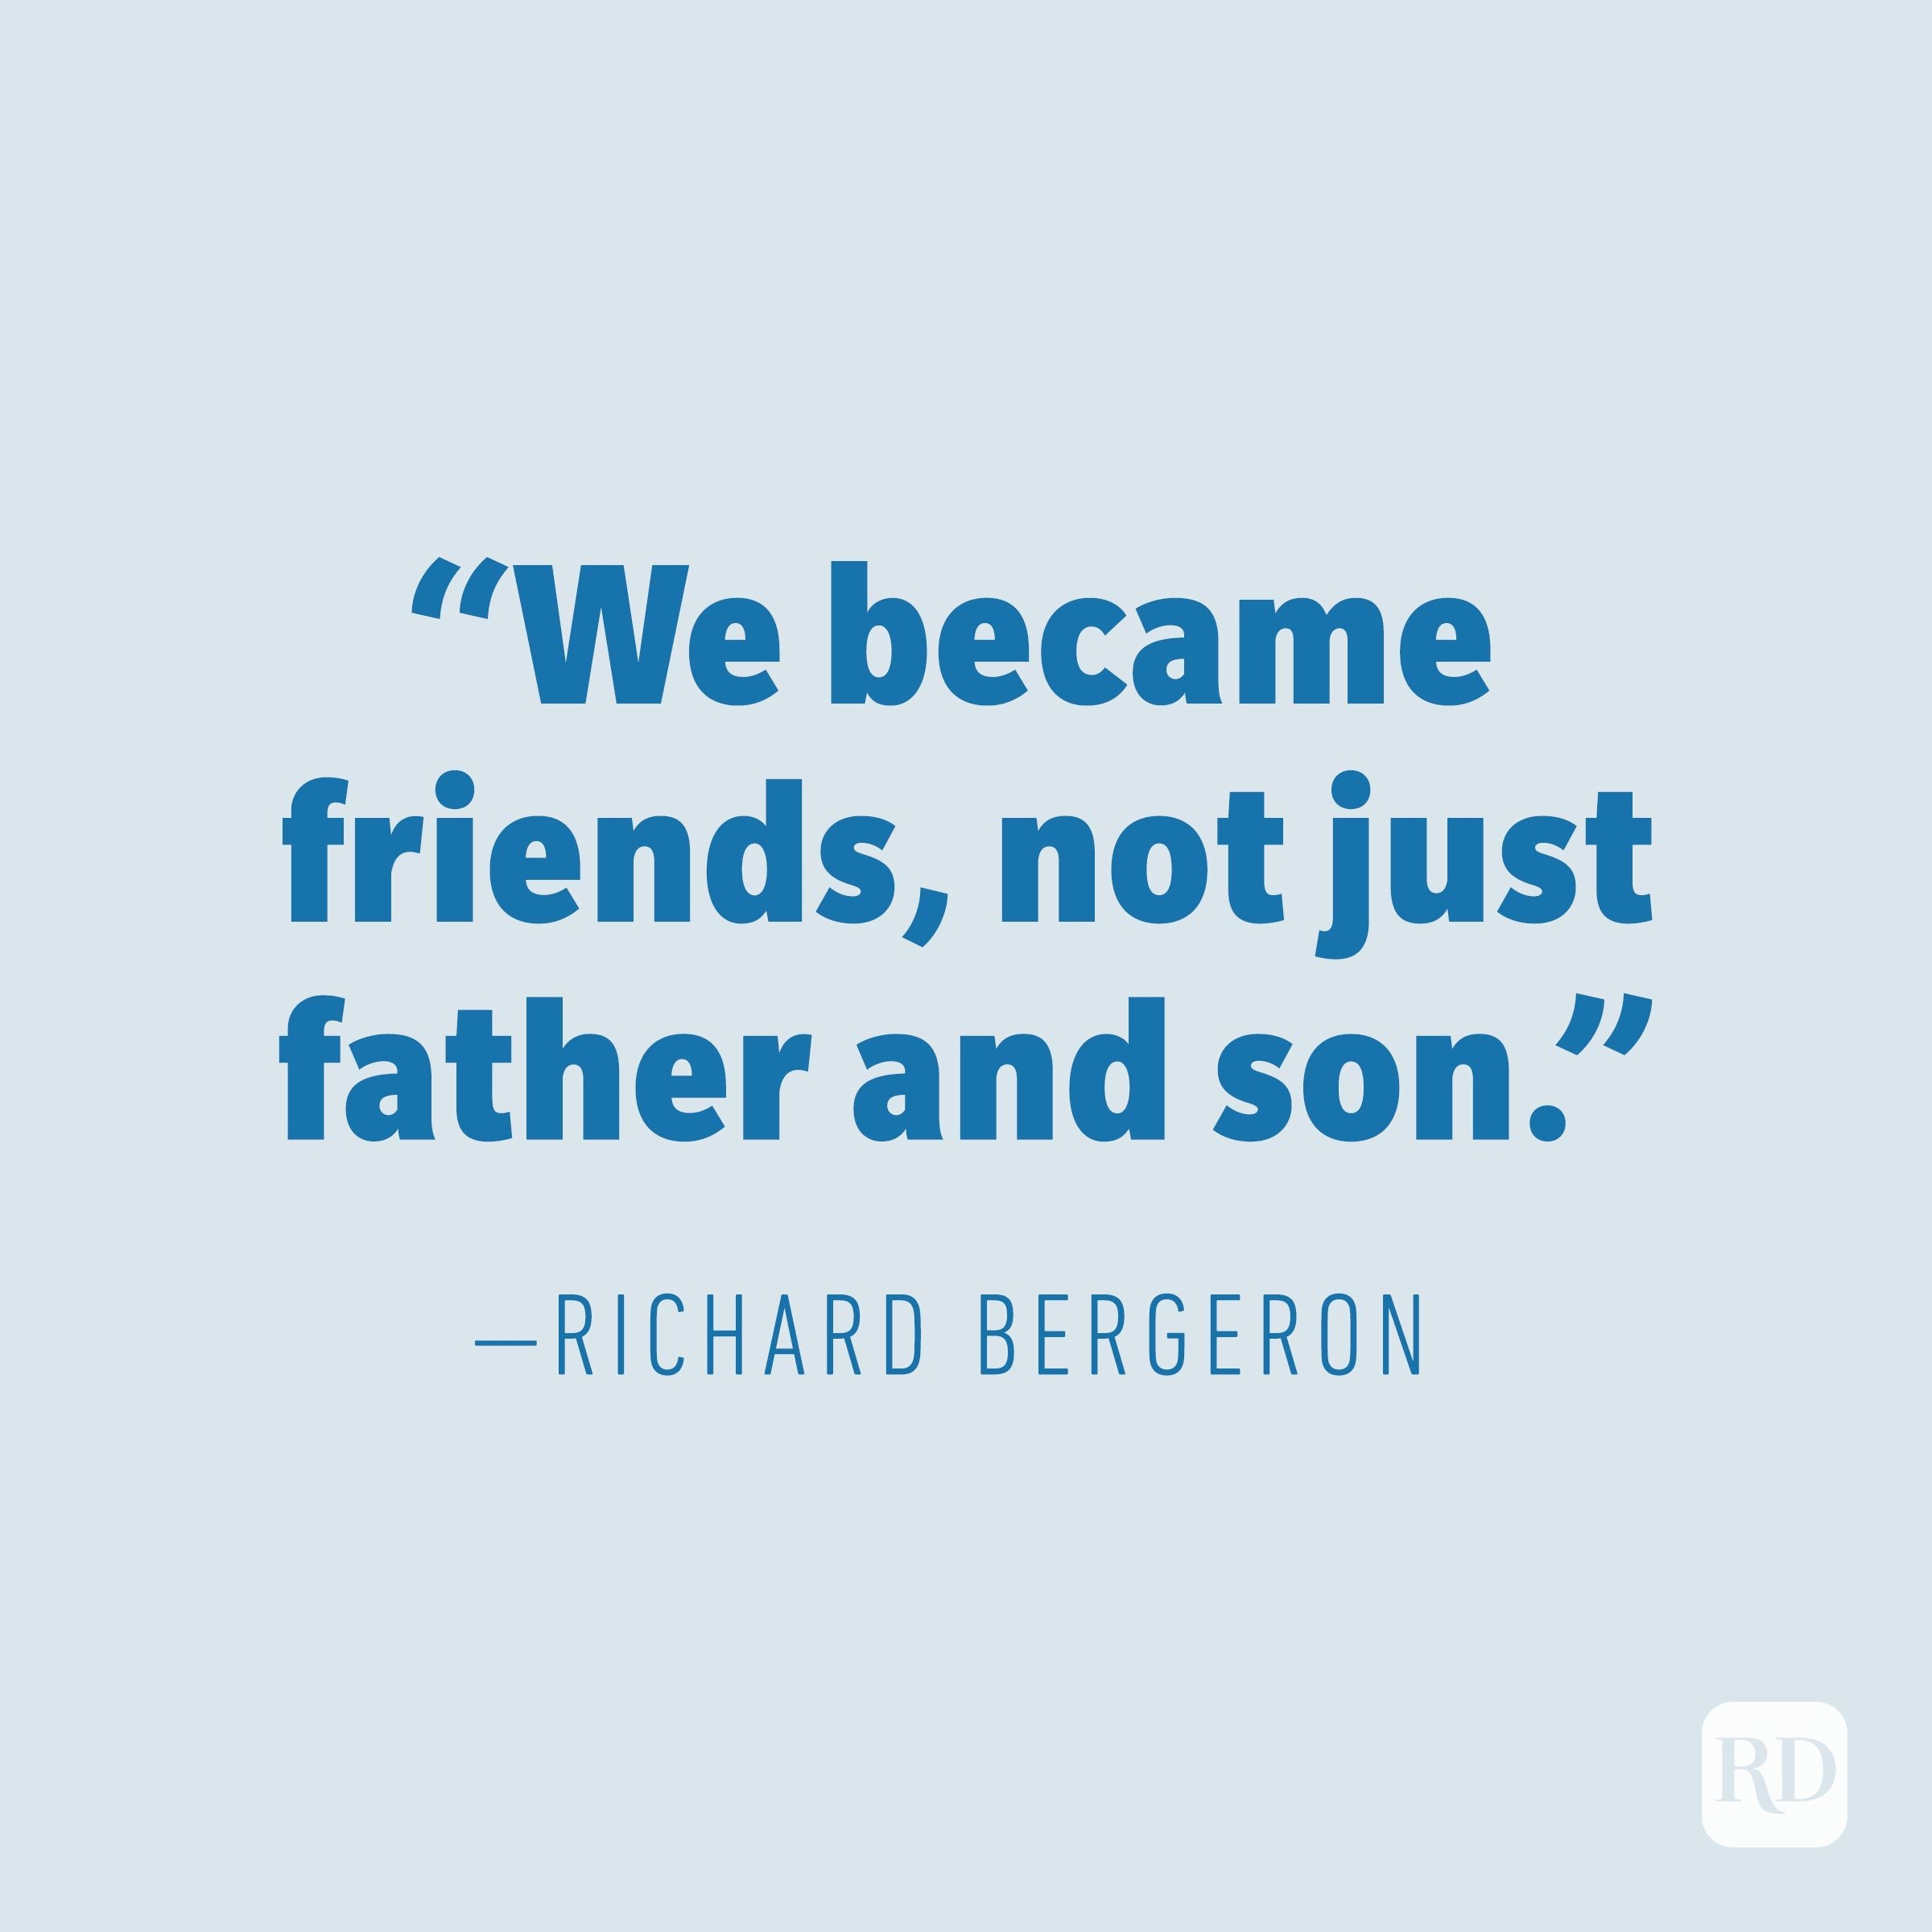 """We became friends, not just father and son."" —RICHARD BERGERON"